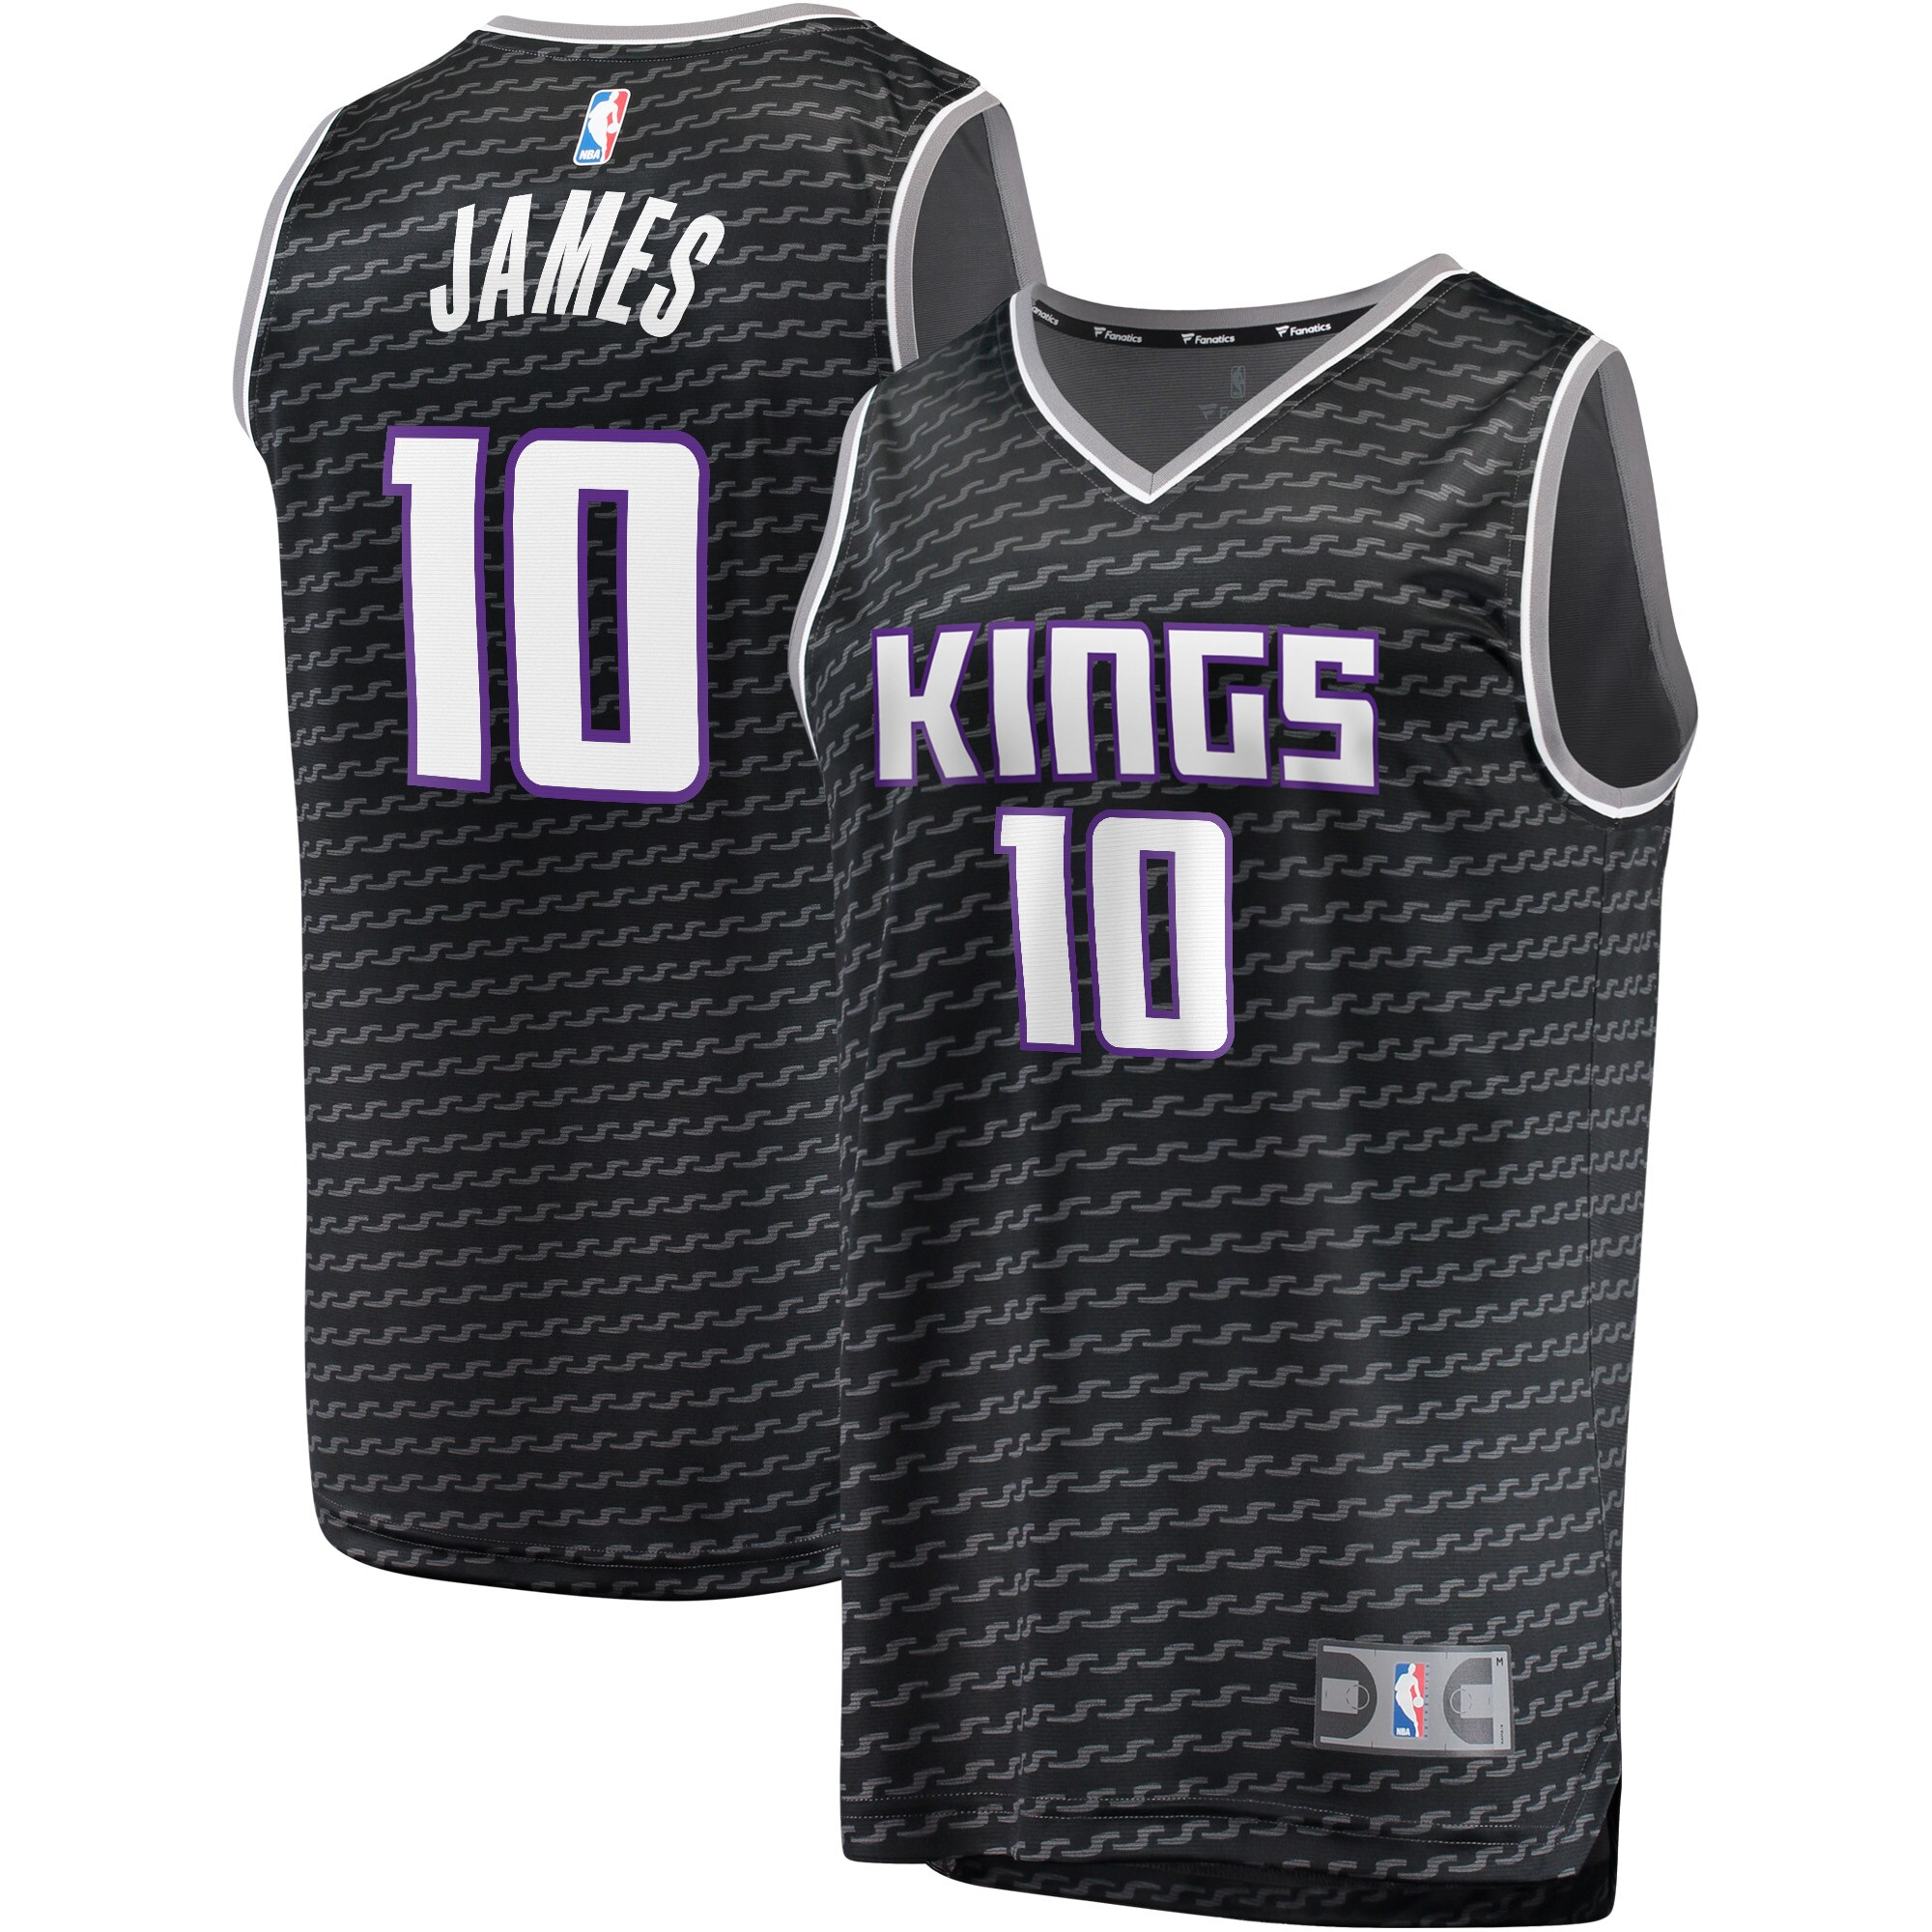 Justin James Sacramento Kings Fanatics Branded Fast Break Replica Player Jersey Black - Statement Edition